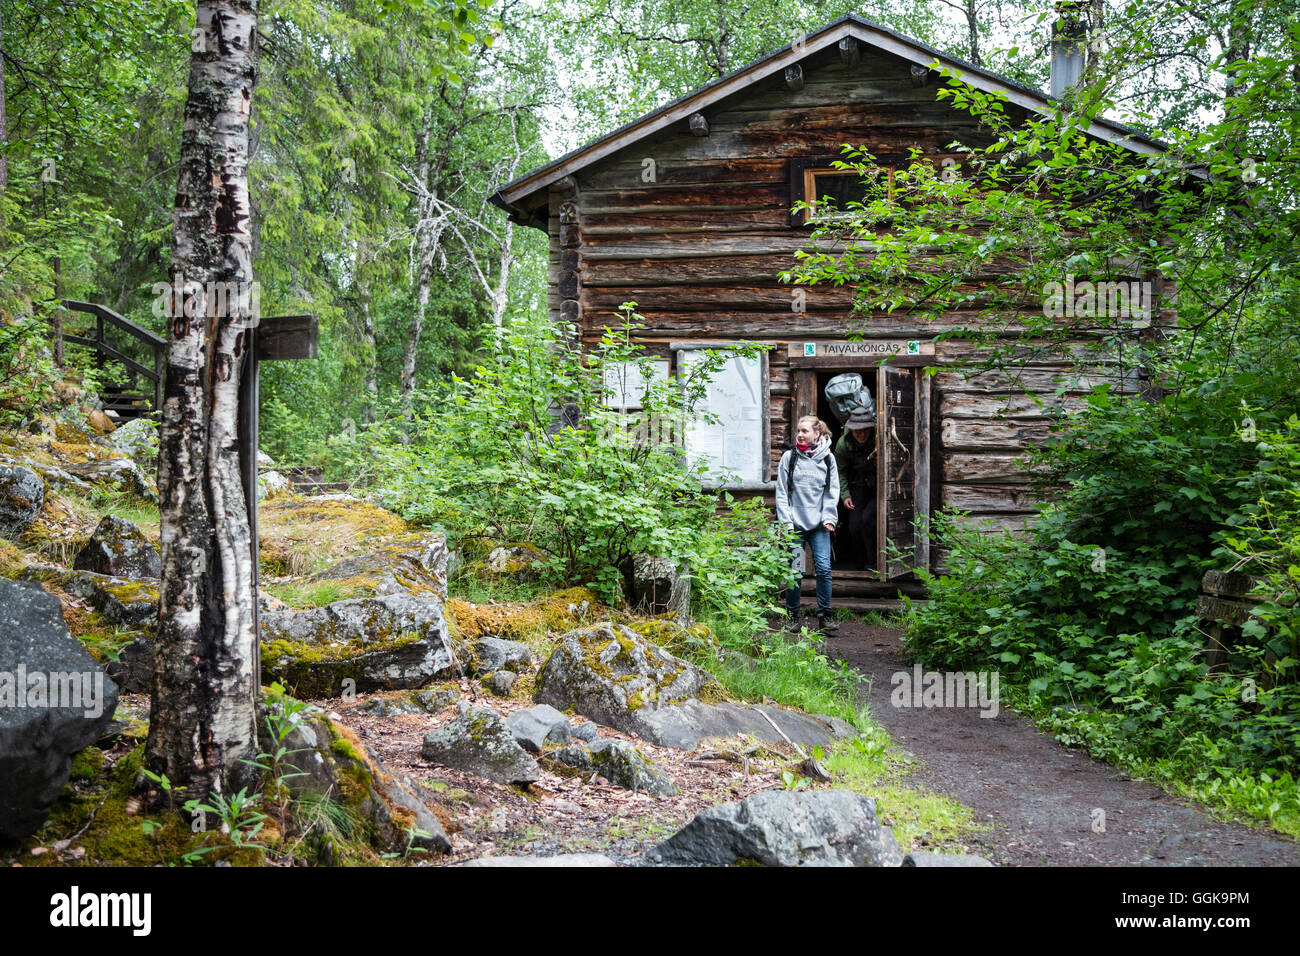 Hiker in front of hut Taivalkoengas, Karhunkierros hiking trail, Oulanka National Park, Northern Ostrobothnia, Finland - Stock Image